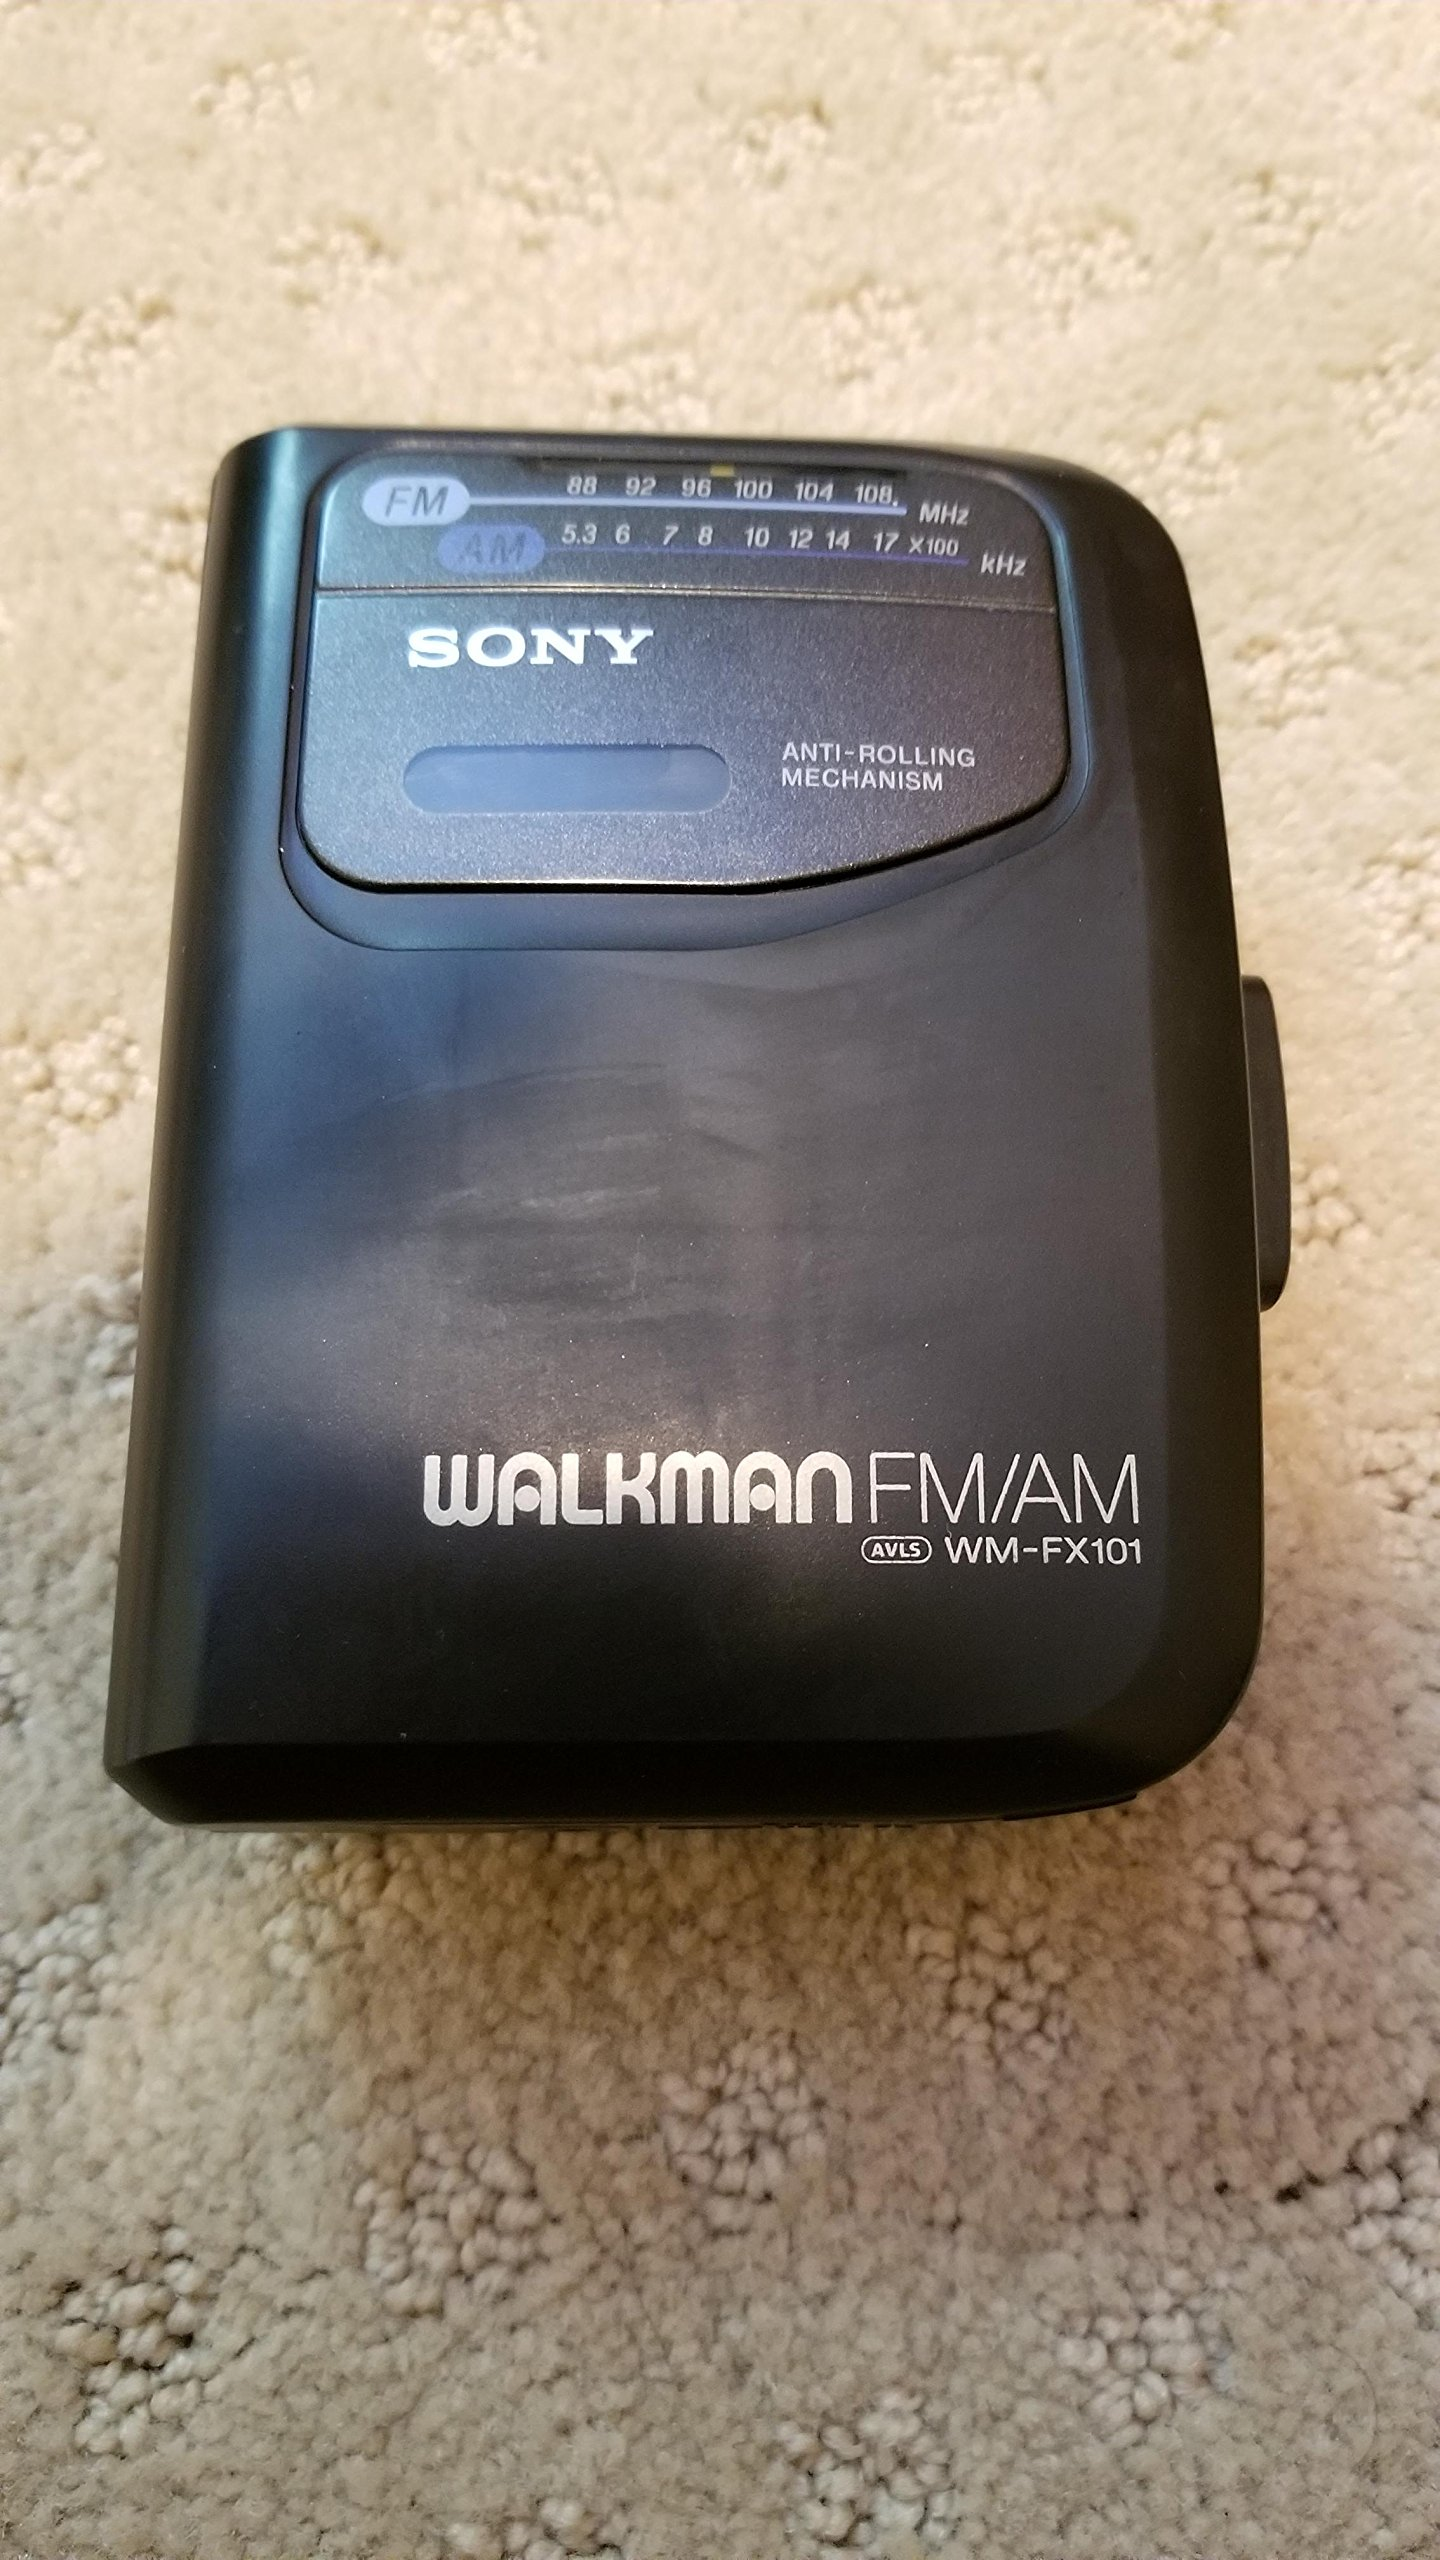 Sony Corp. Sony Anti-Rolling Mechanism Sony Walkman FM/AM AVLS WM-FX101 Radio Cassette Tape Player Model# WM-FX101